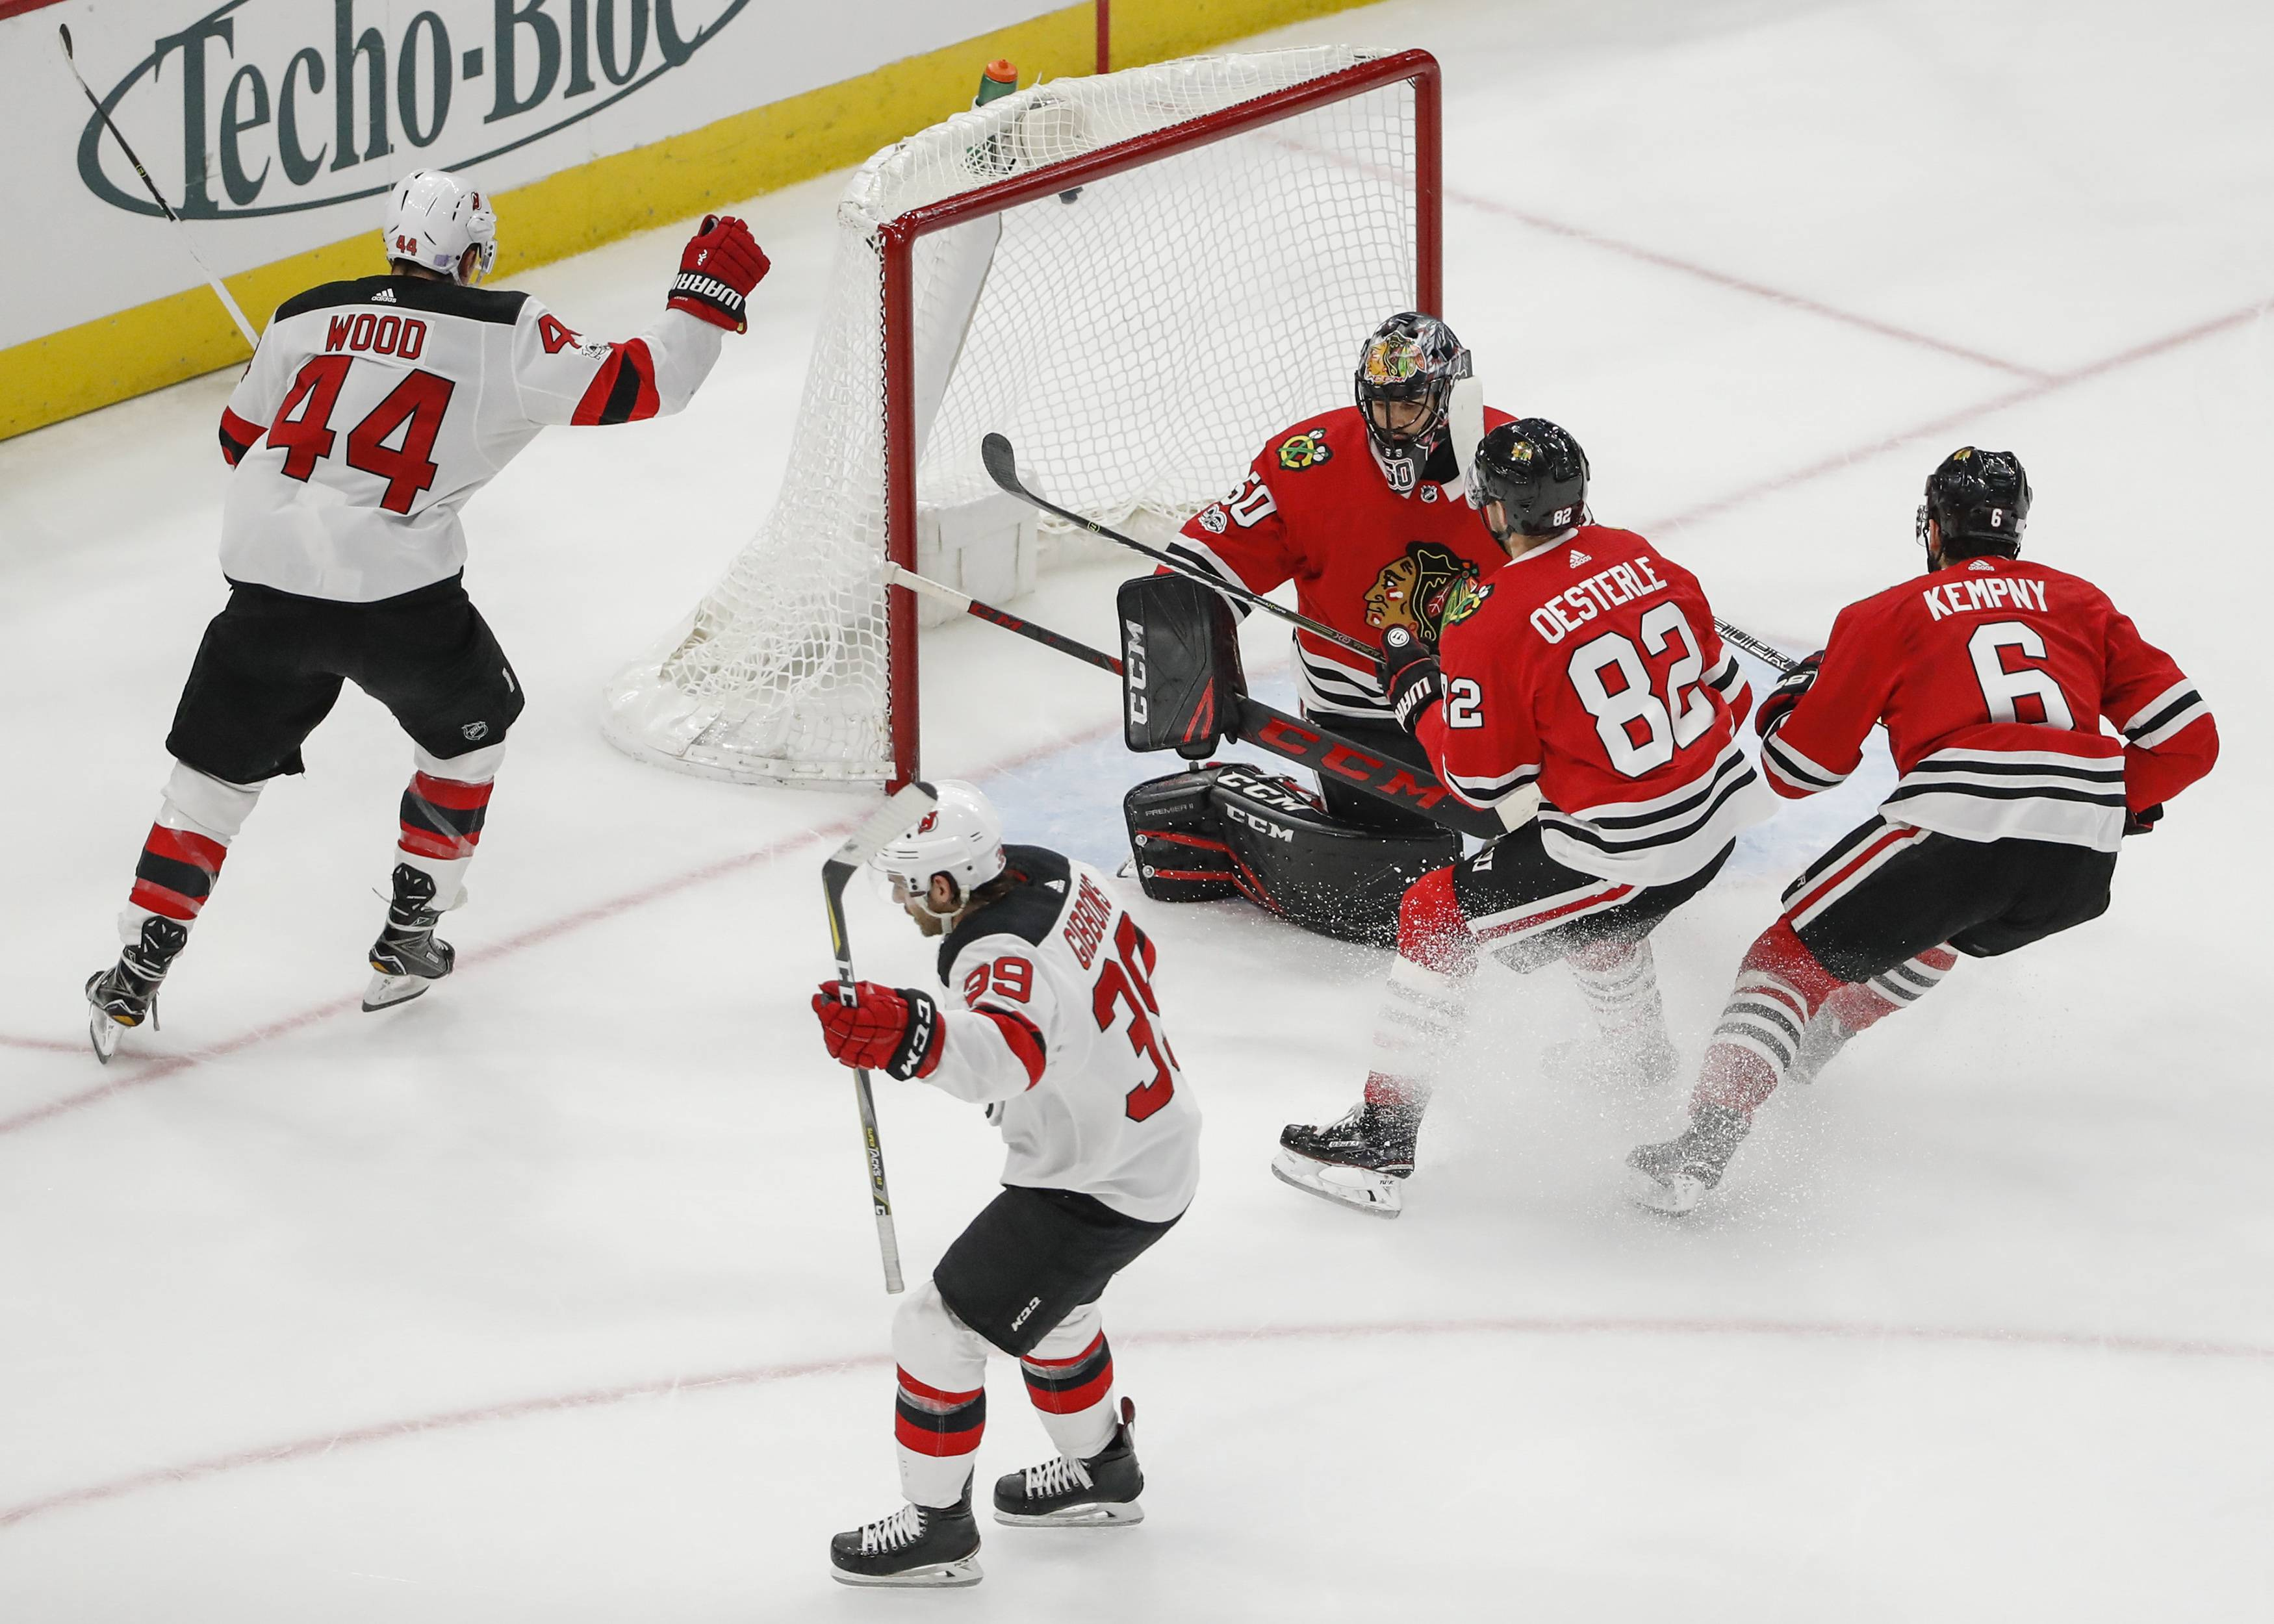 Chicago Blackhawks goalie Corey Crawford allowed 5 goals in less than 20 minutes in Sunday's loss to New Jersey. Crawford's season save percentage dropped from .942 to .932.